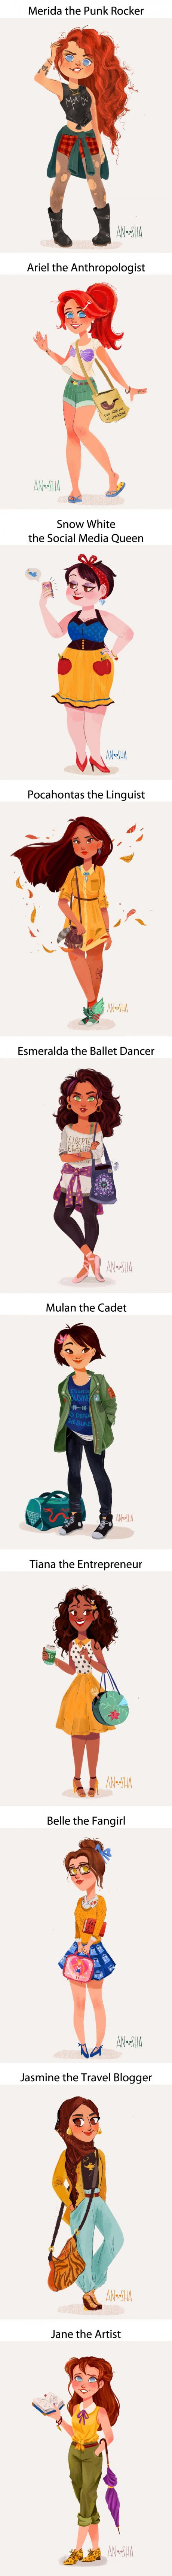 If Disney Princess Lived In The 21st Century As Modern Day Girls (by Anoosha Syed)